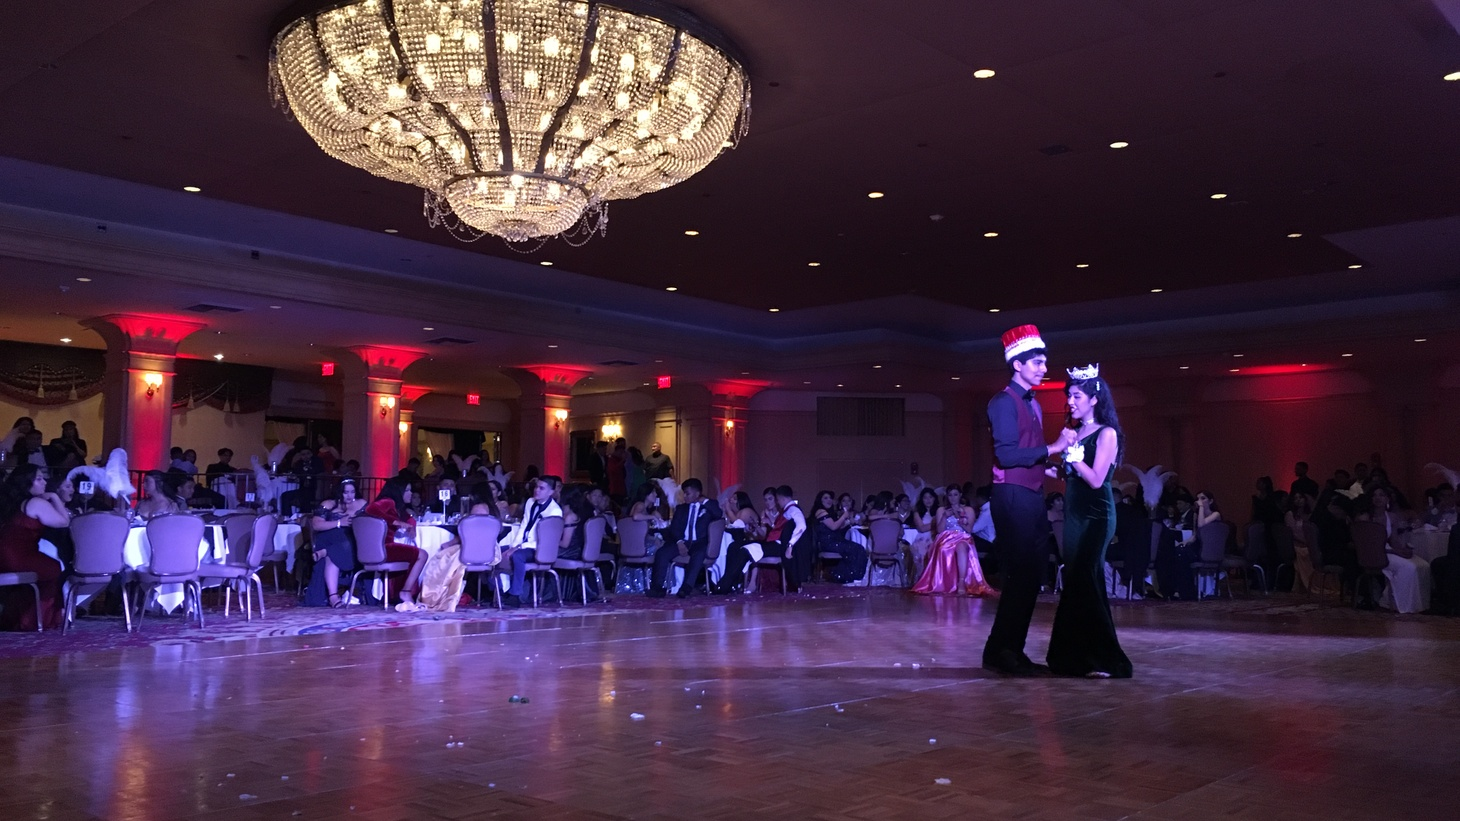 The Roosevelt High School prom king and queen dance at prom. Photo by David Weinberg